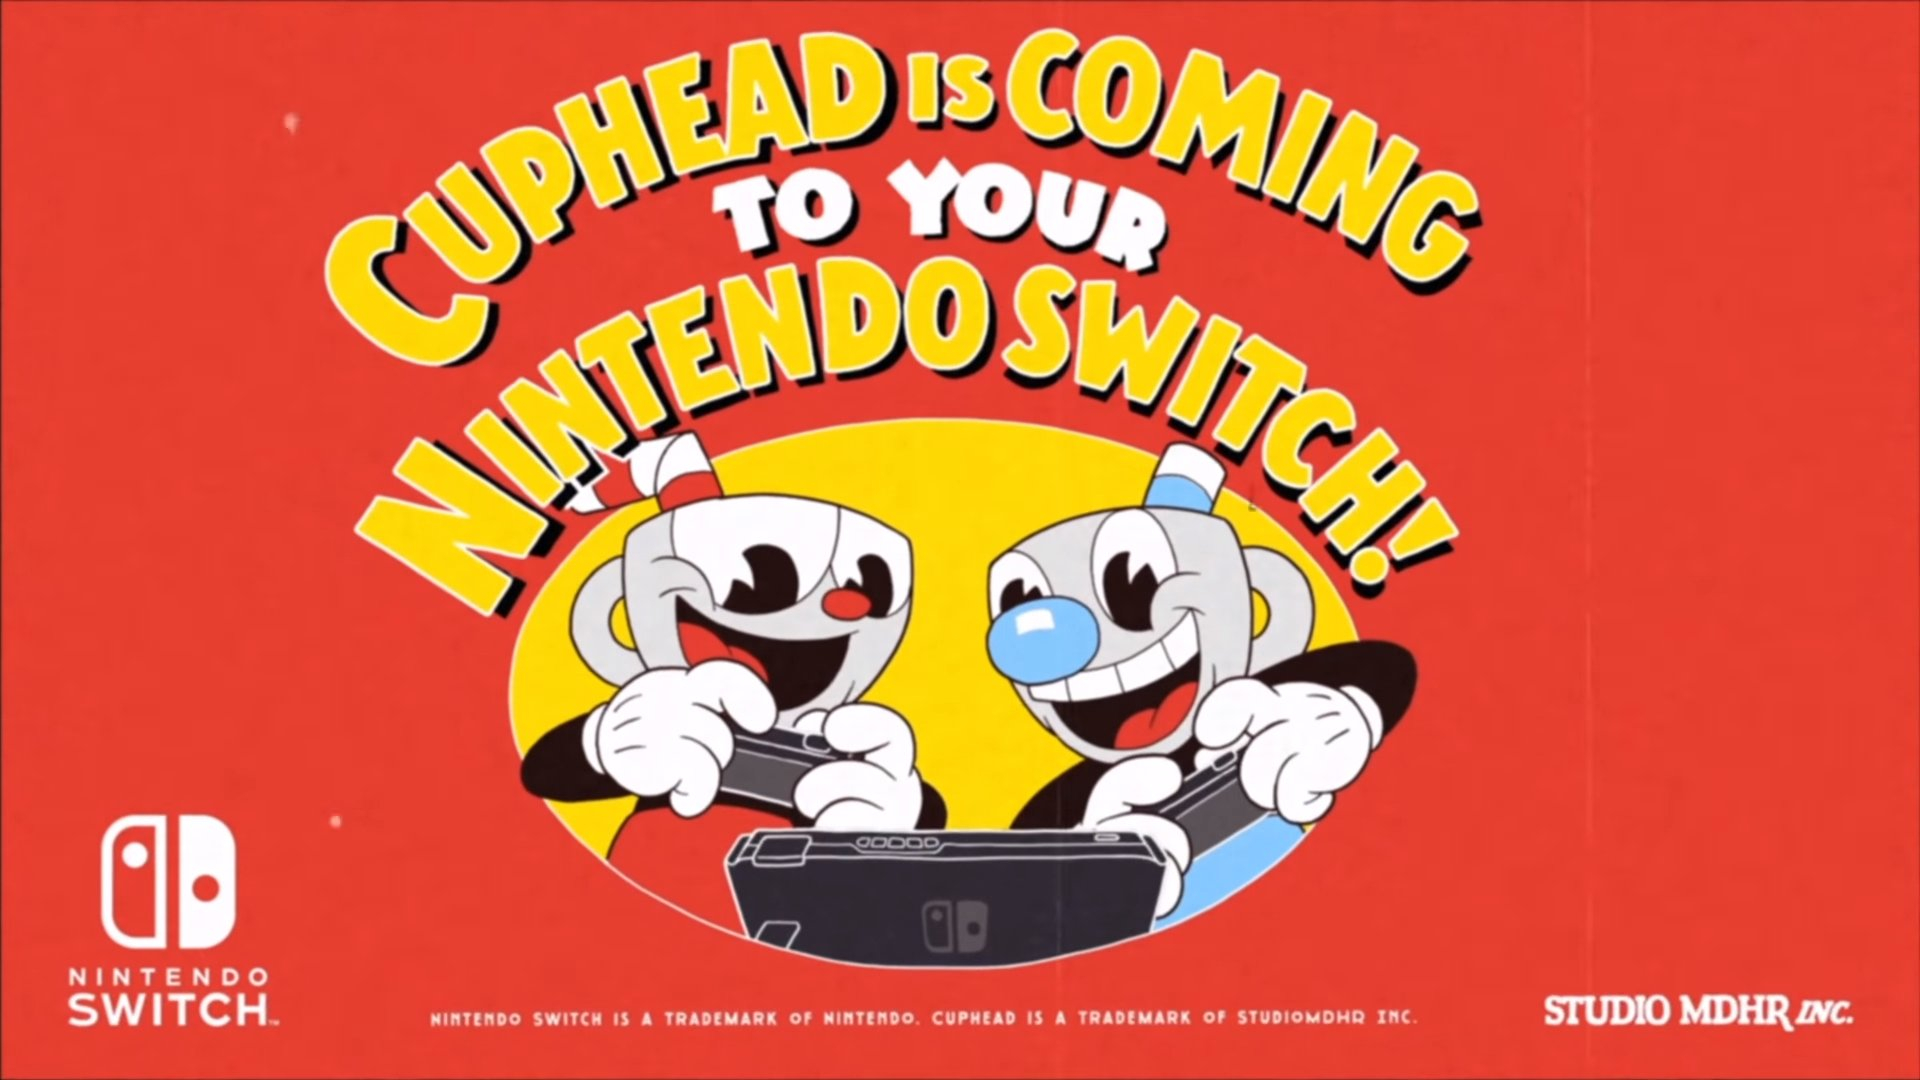 Cuphead is coming to Nintendo Switch on April 18th Header Image